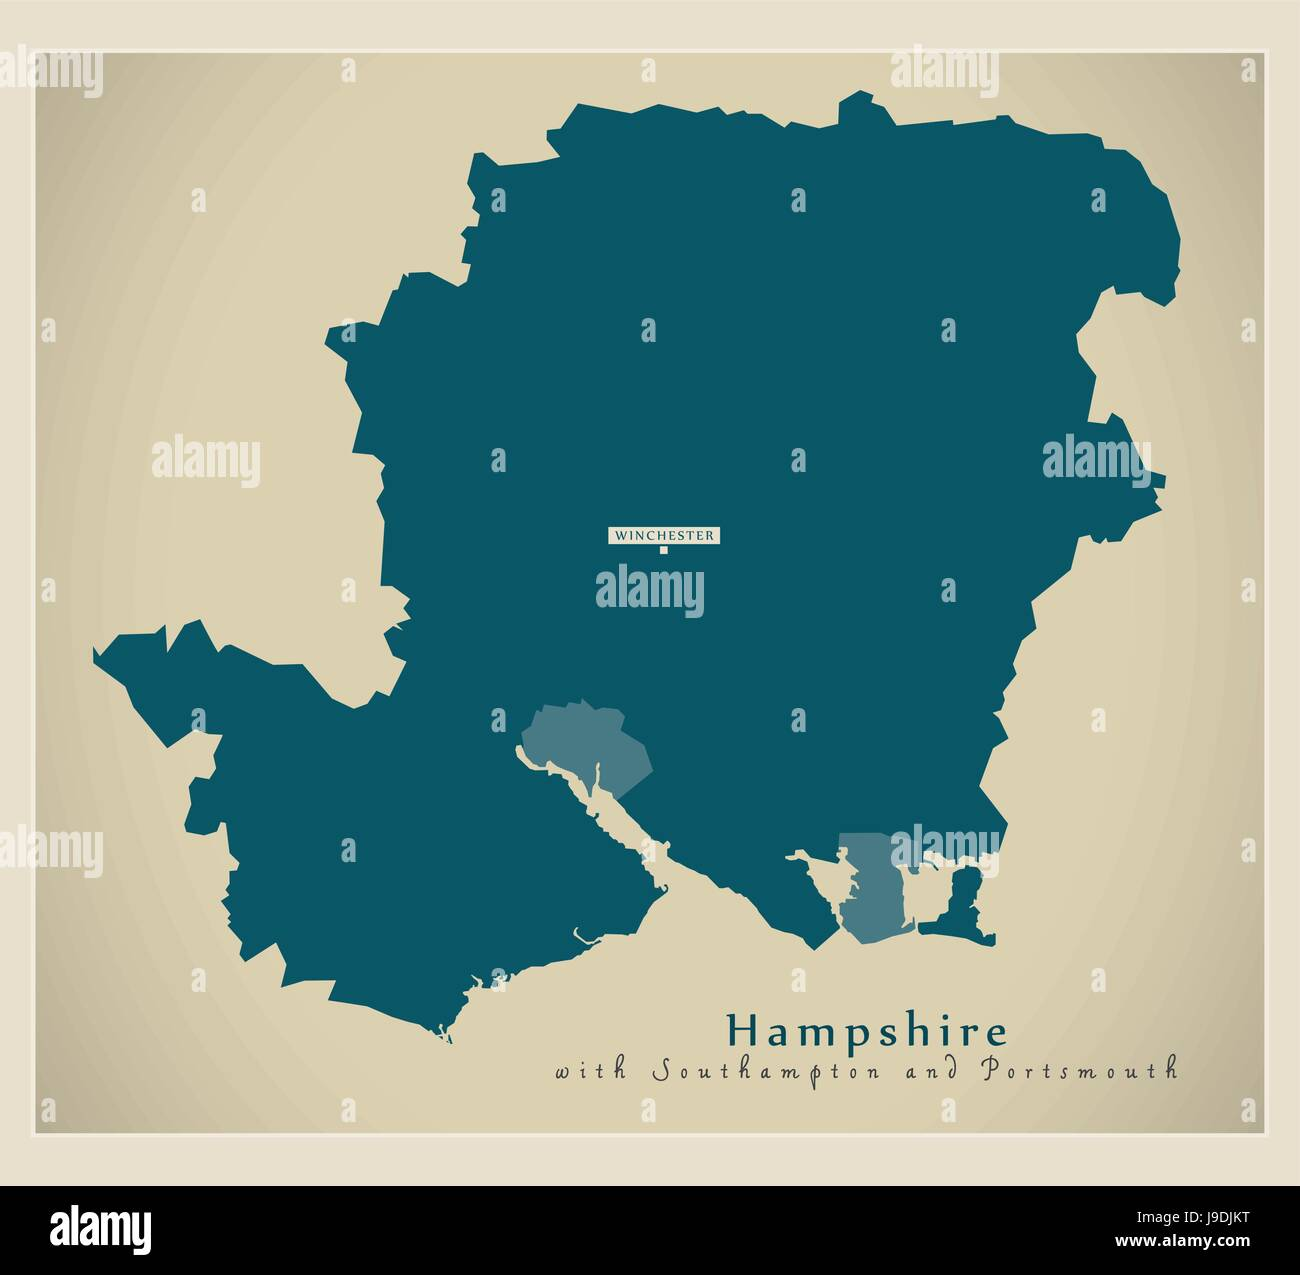 Modern Map  Hampshire county including Southampton and Portsmouth